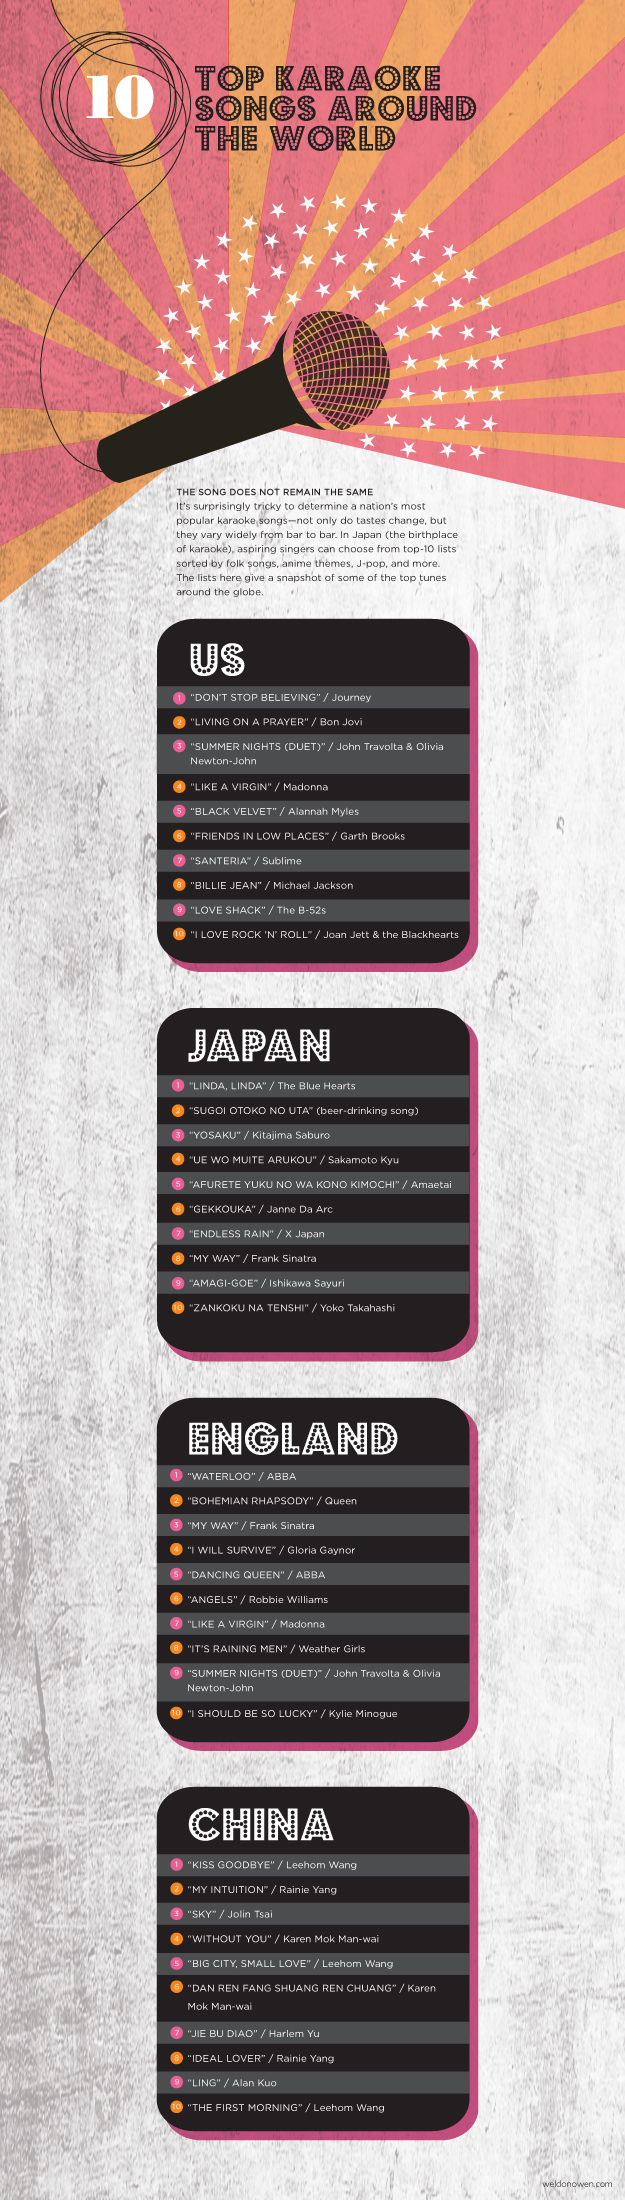 10 top karaoke songs from the US, japan, china, and england - Weldon